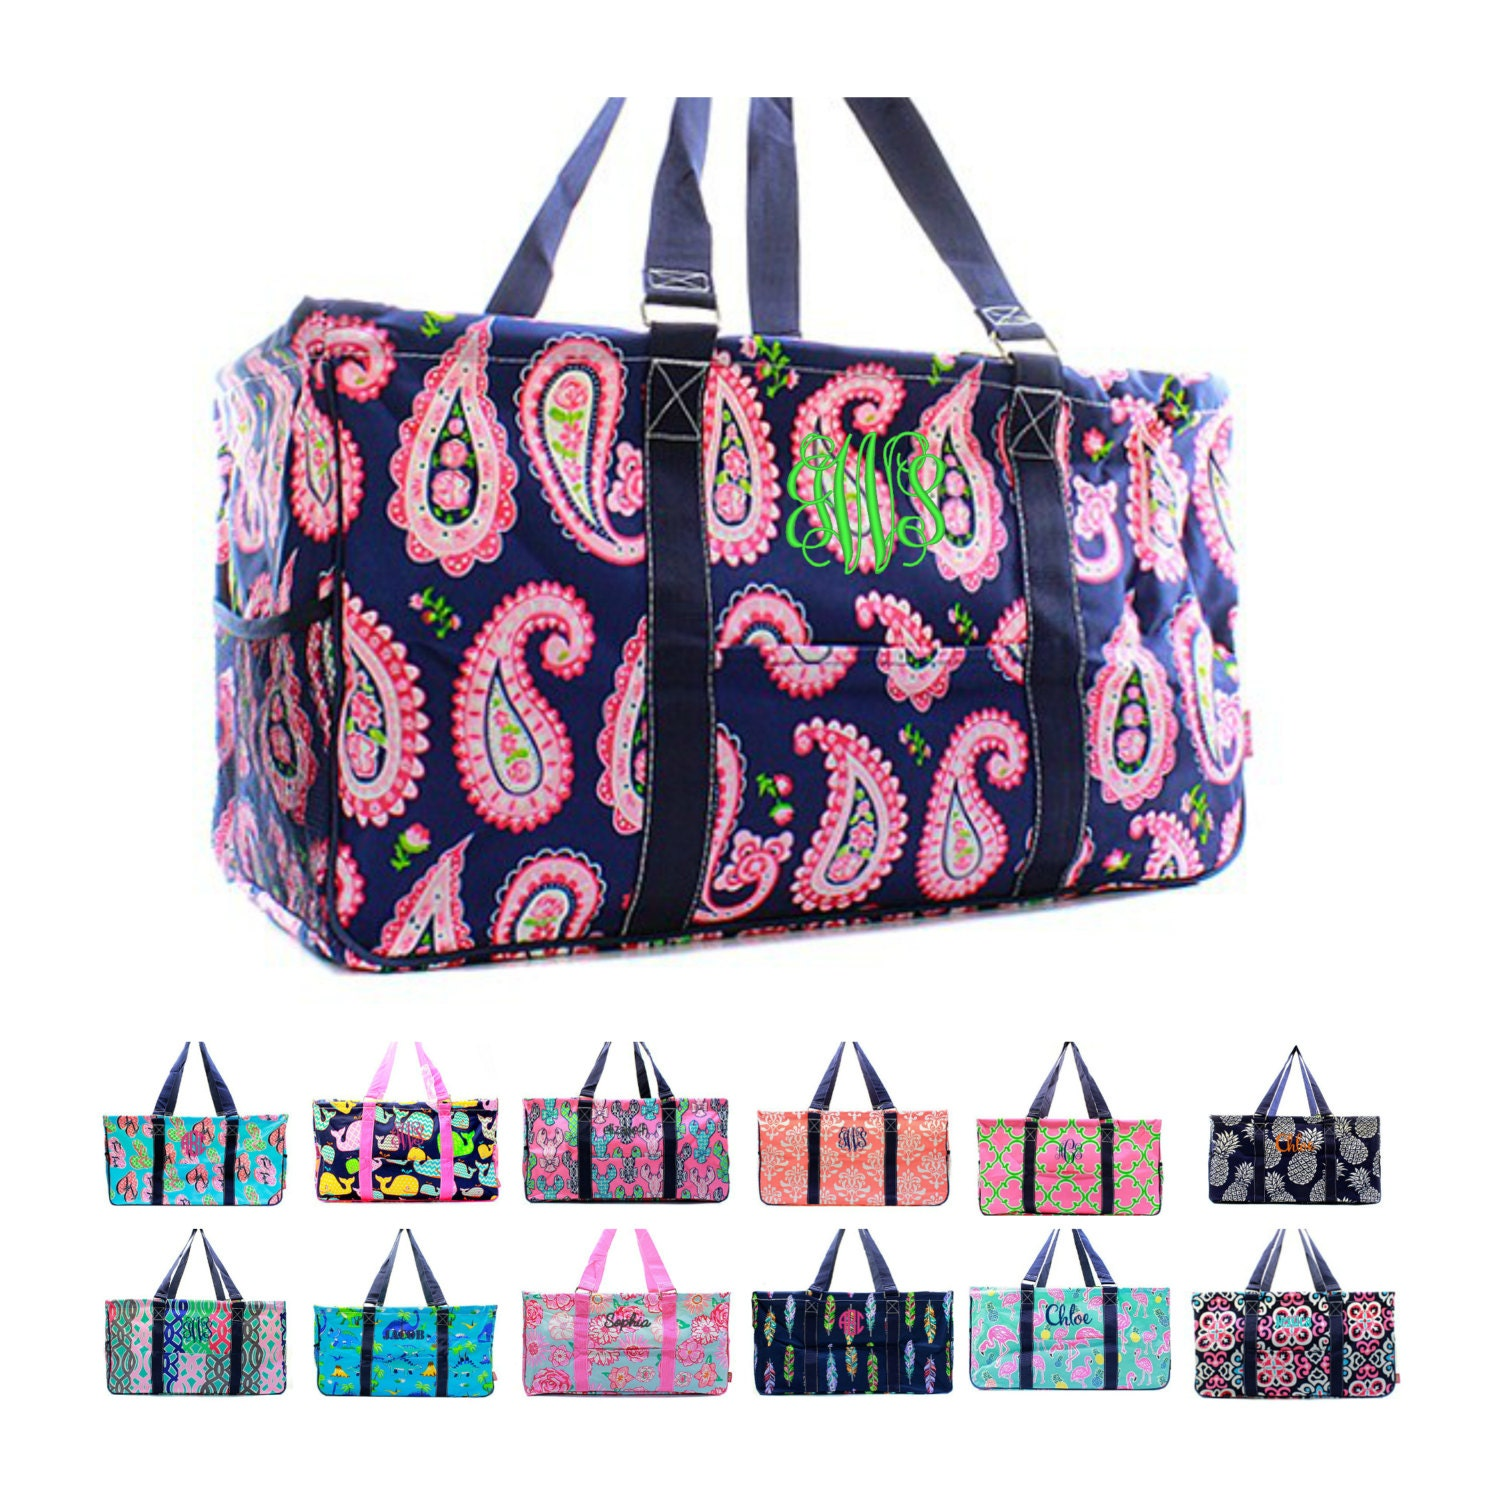 Monogrammed large utility tote bag personalized beach picnic